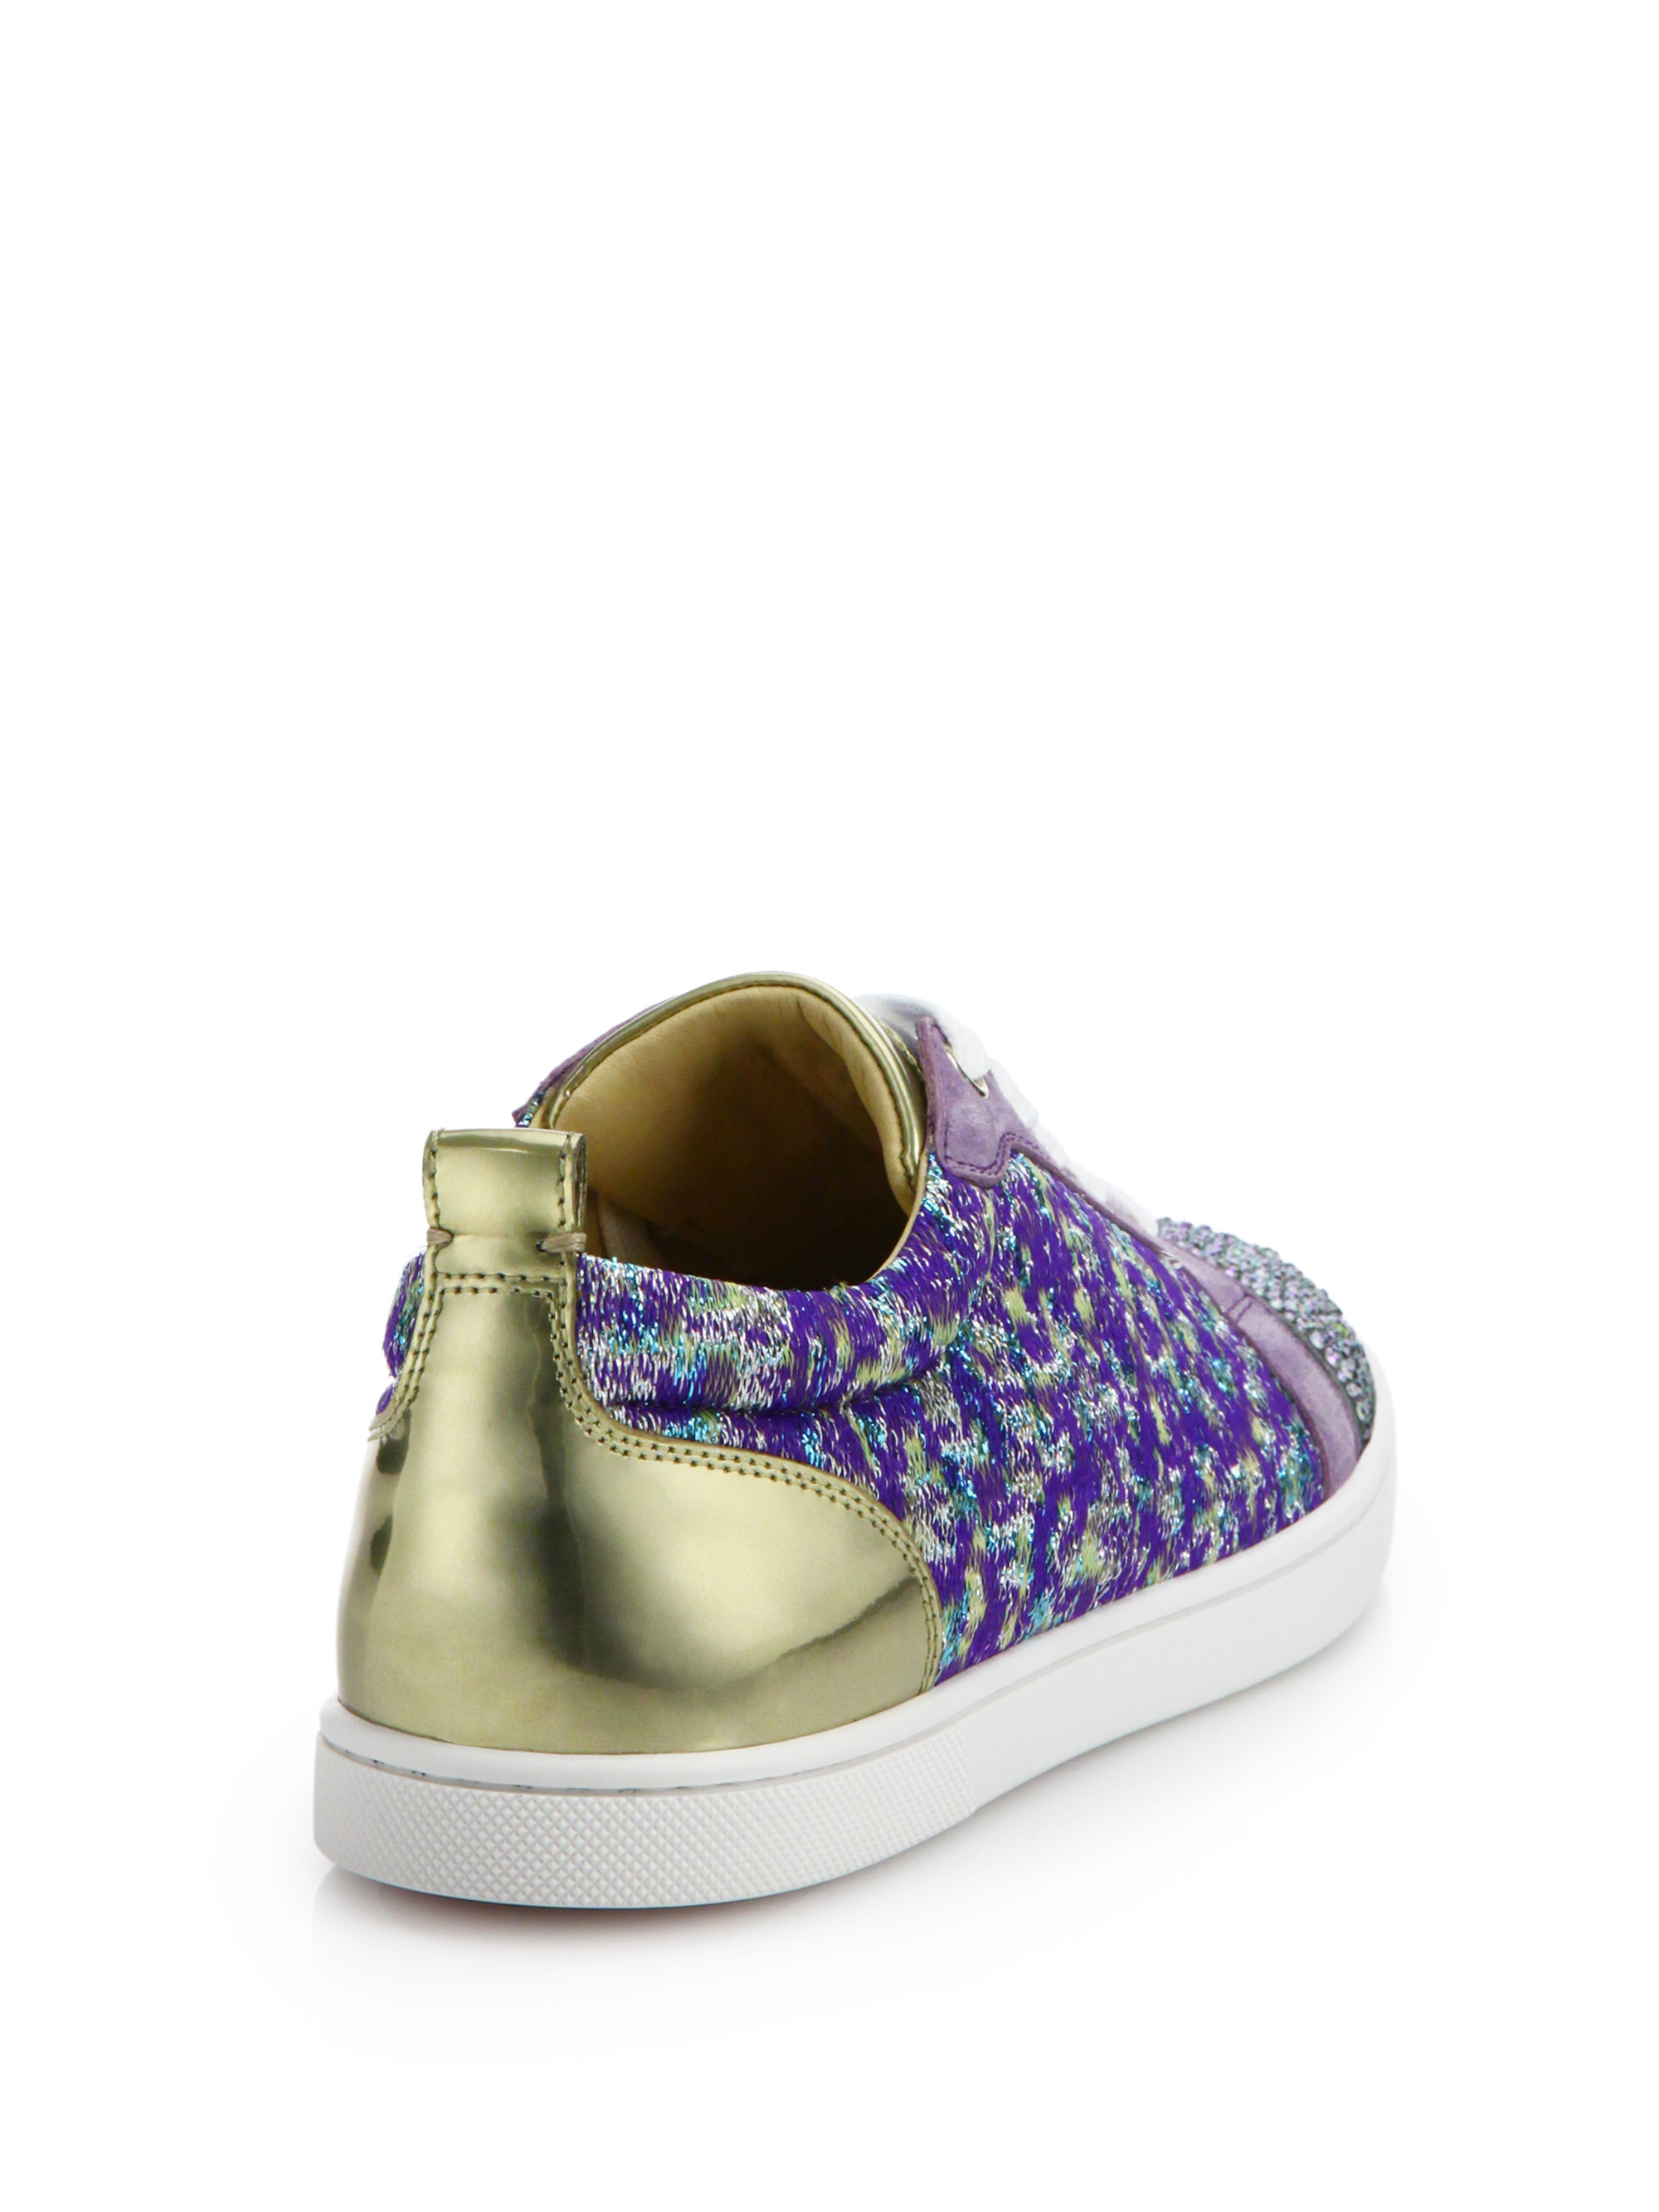 spiked loafers mens christian louboutin - Christian louboutin Gondolastrass Low-top Sneakers in Purple ...